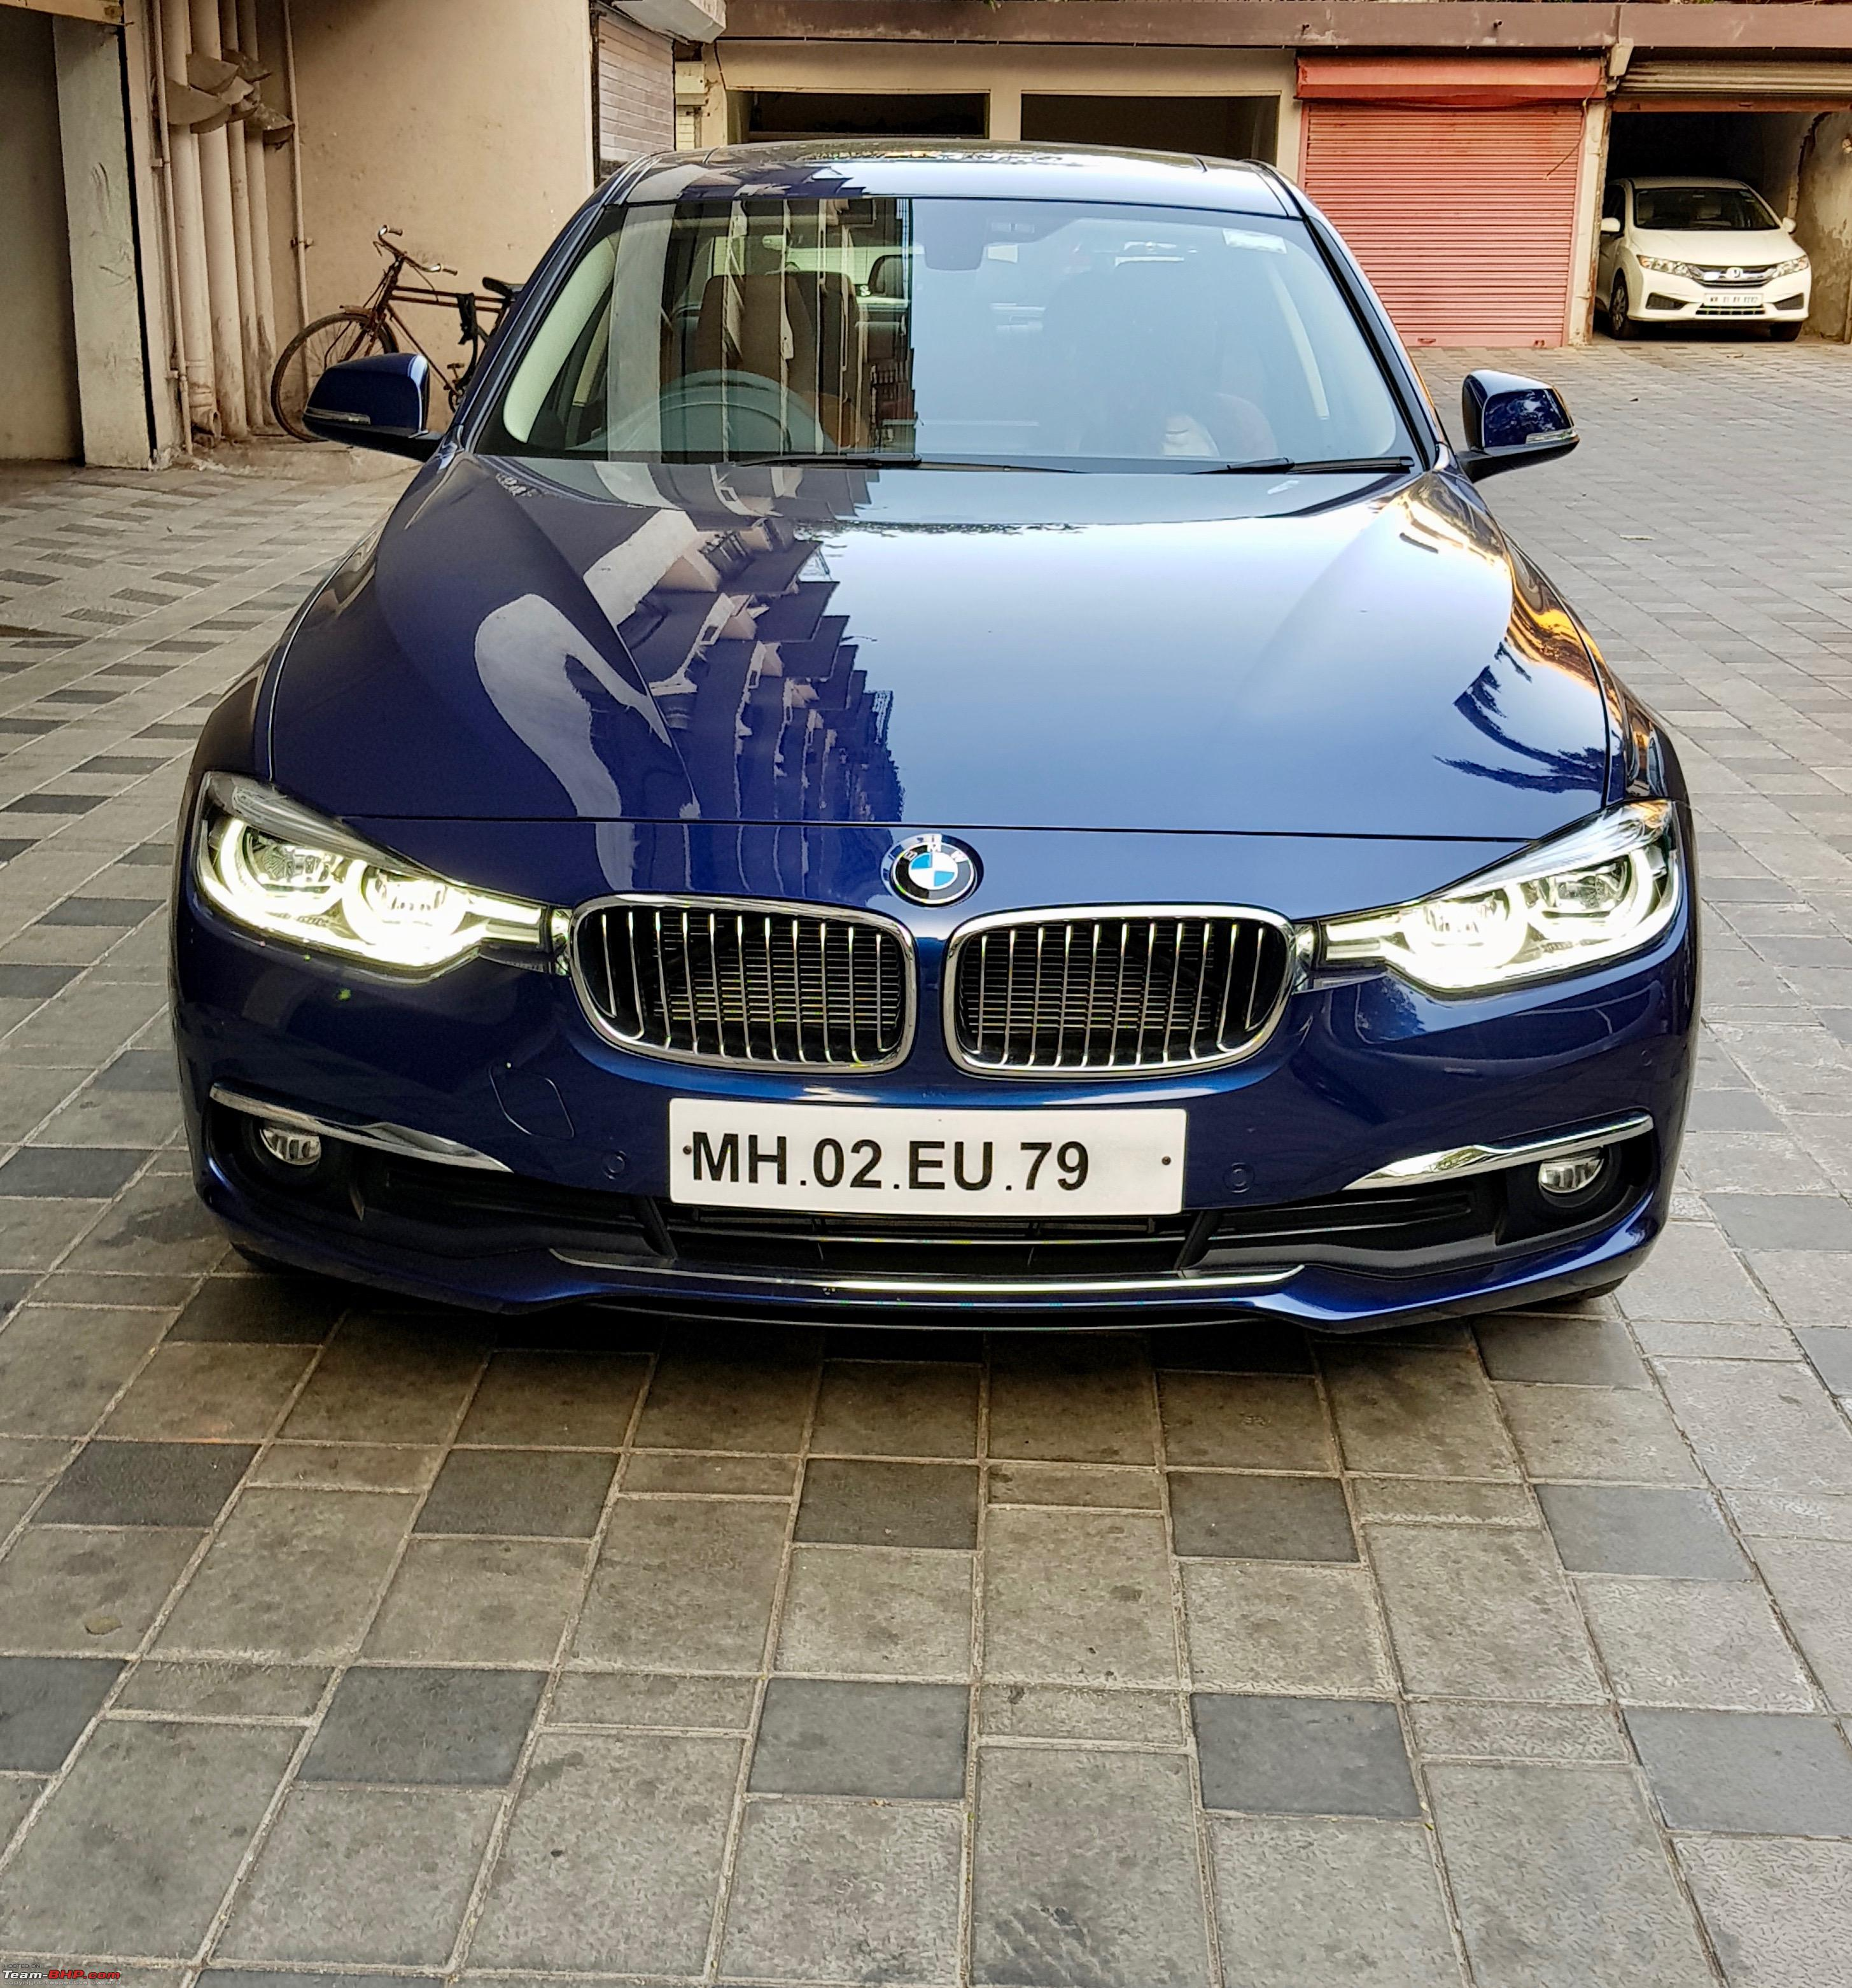 BMW 320d & 328i : Official Review - Page 108 - Team-BHP